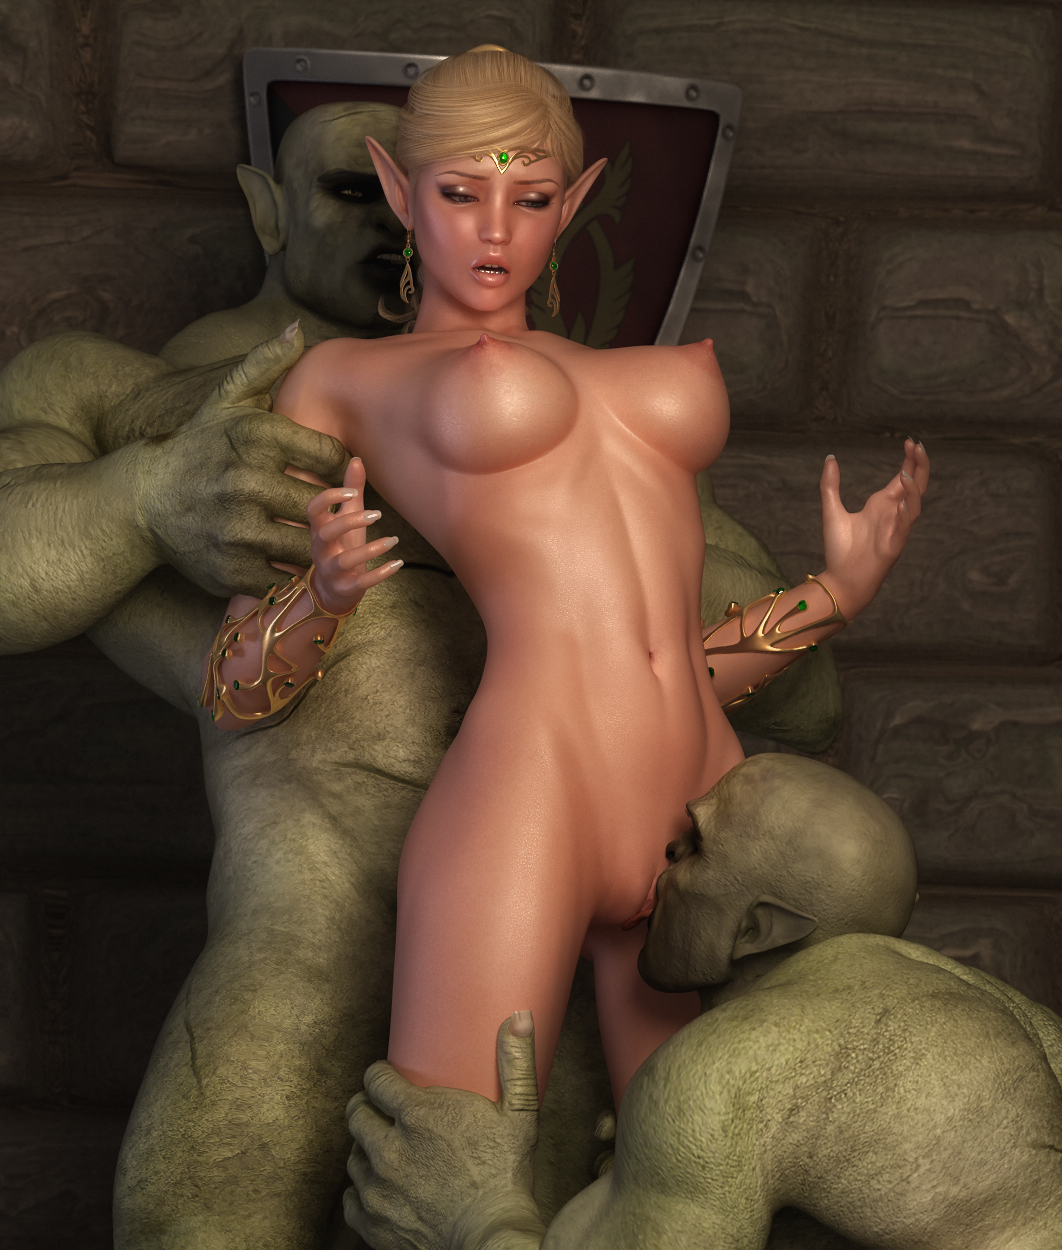 3d hentai orc and elf videos erotica movies